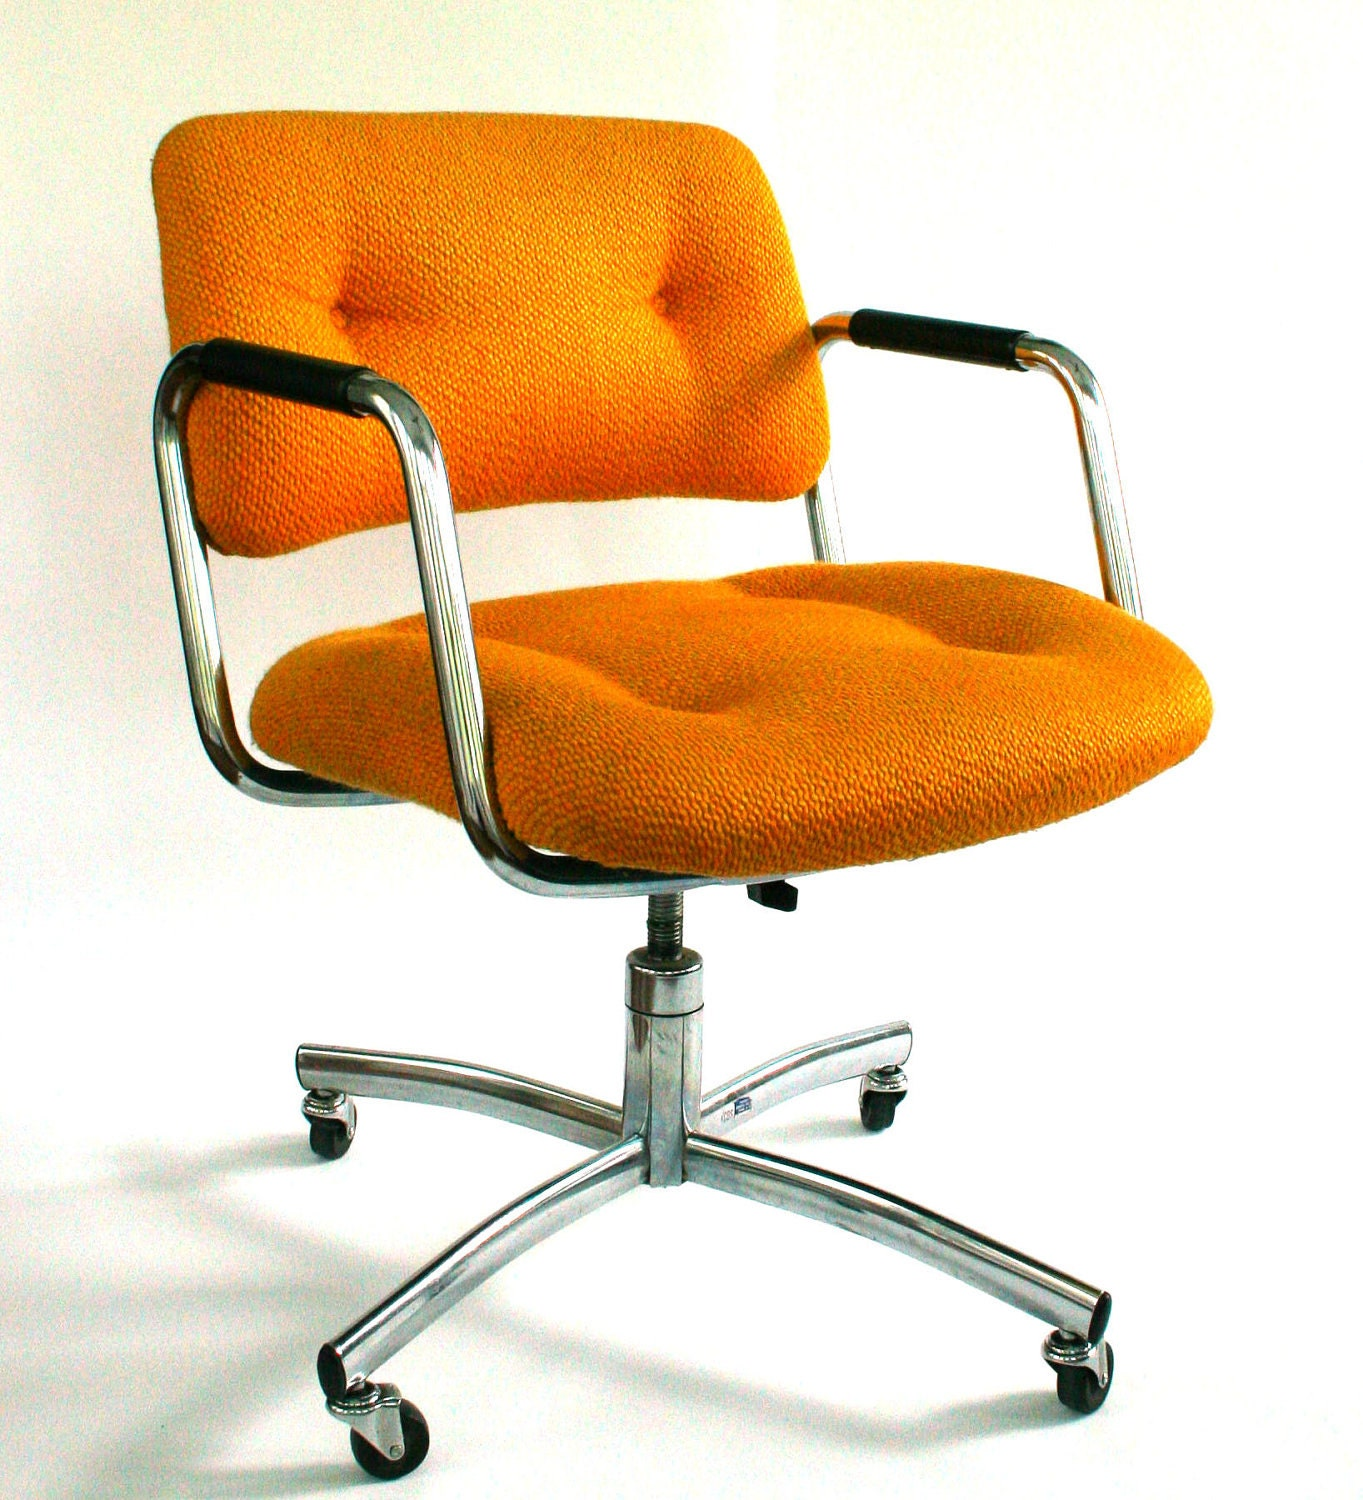 Vintage Office Desk Chair MidCentury Upholstered by RhapsodyAttic